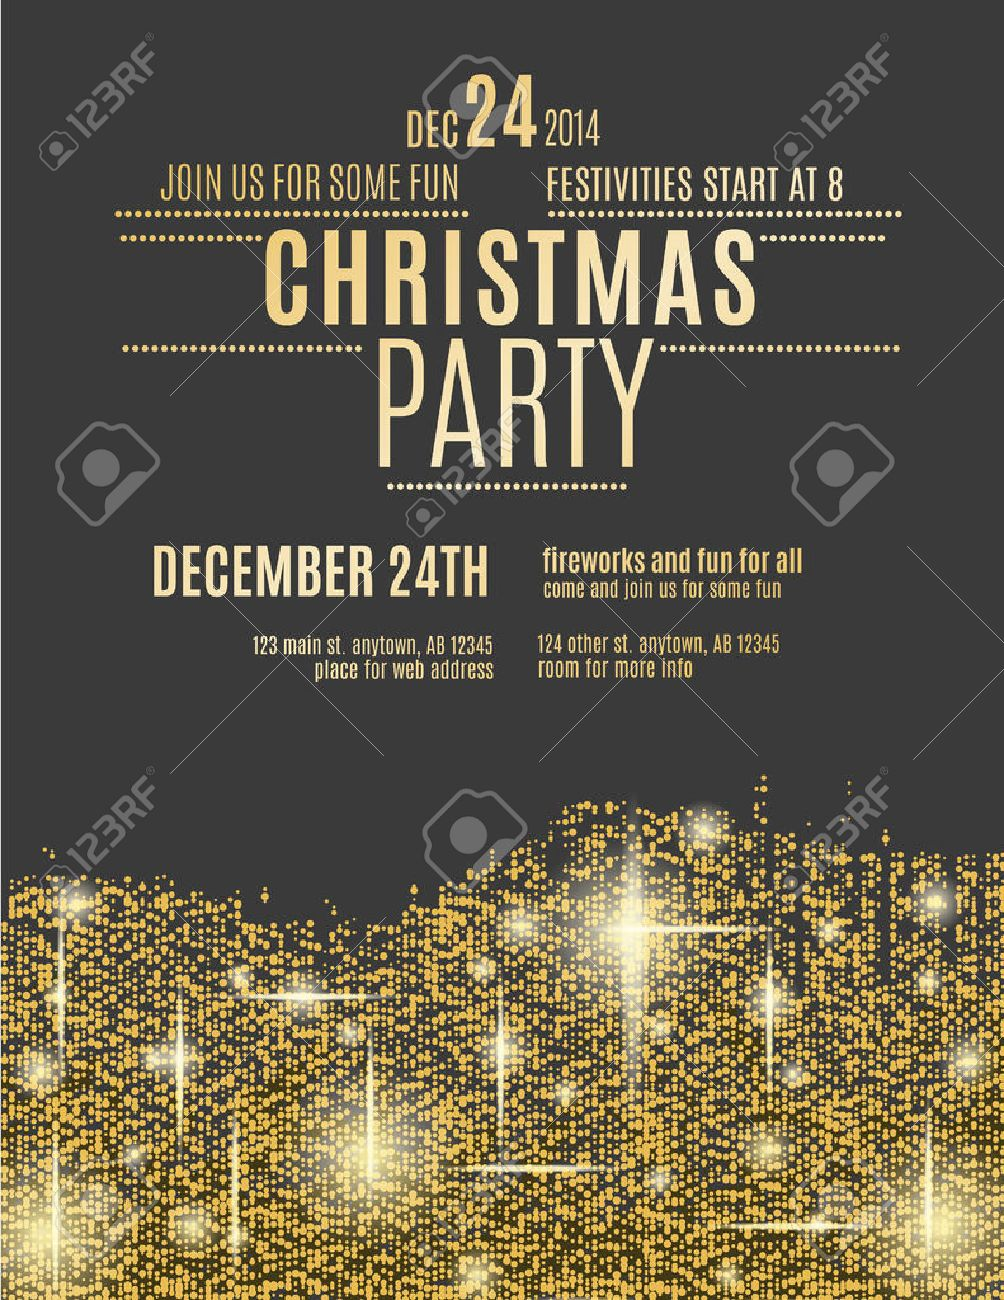 Glittering Gold Christmas Party Invitation Flyer Royalty Free ...